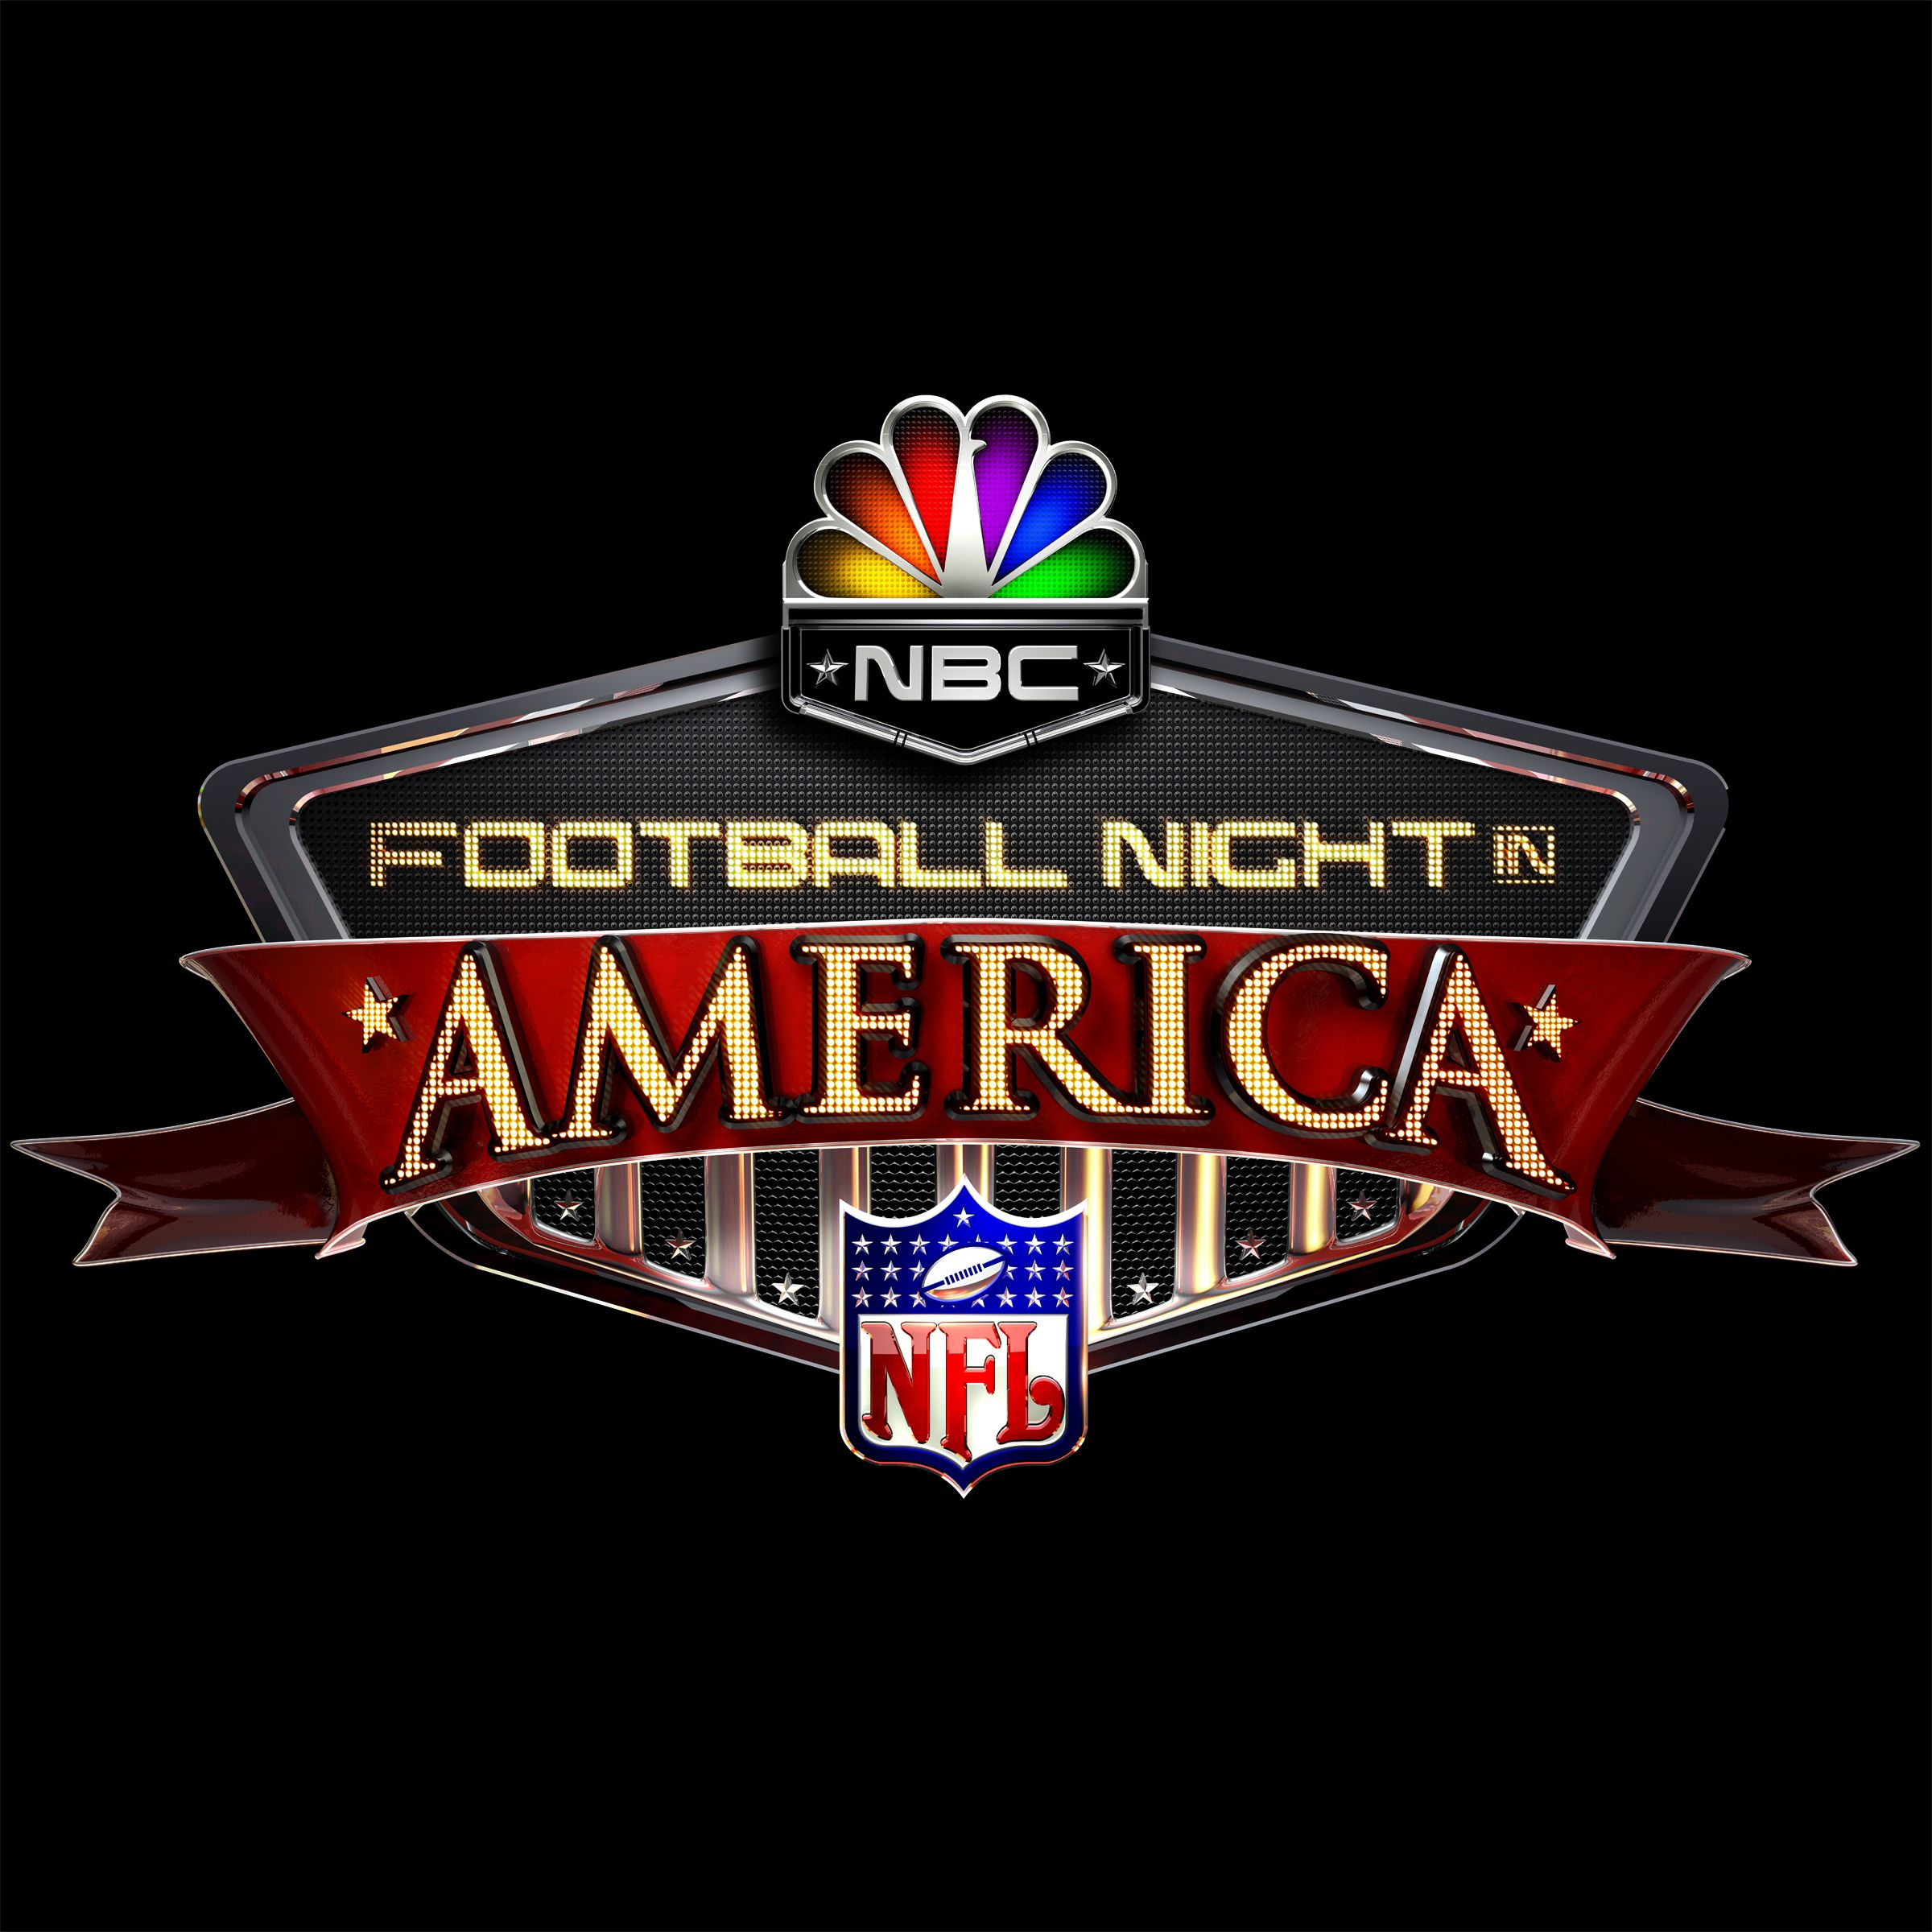 NBC Football Night in America Logo design nbc nfl